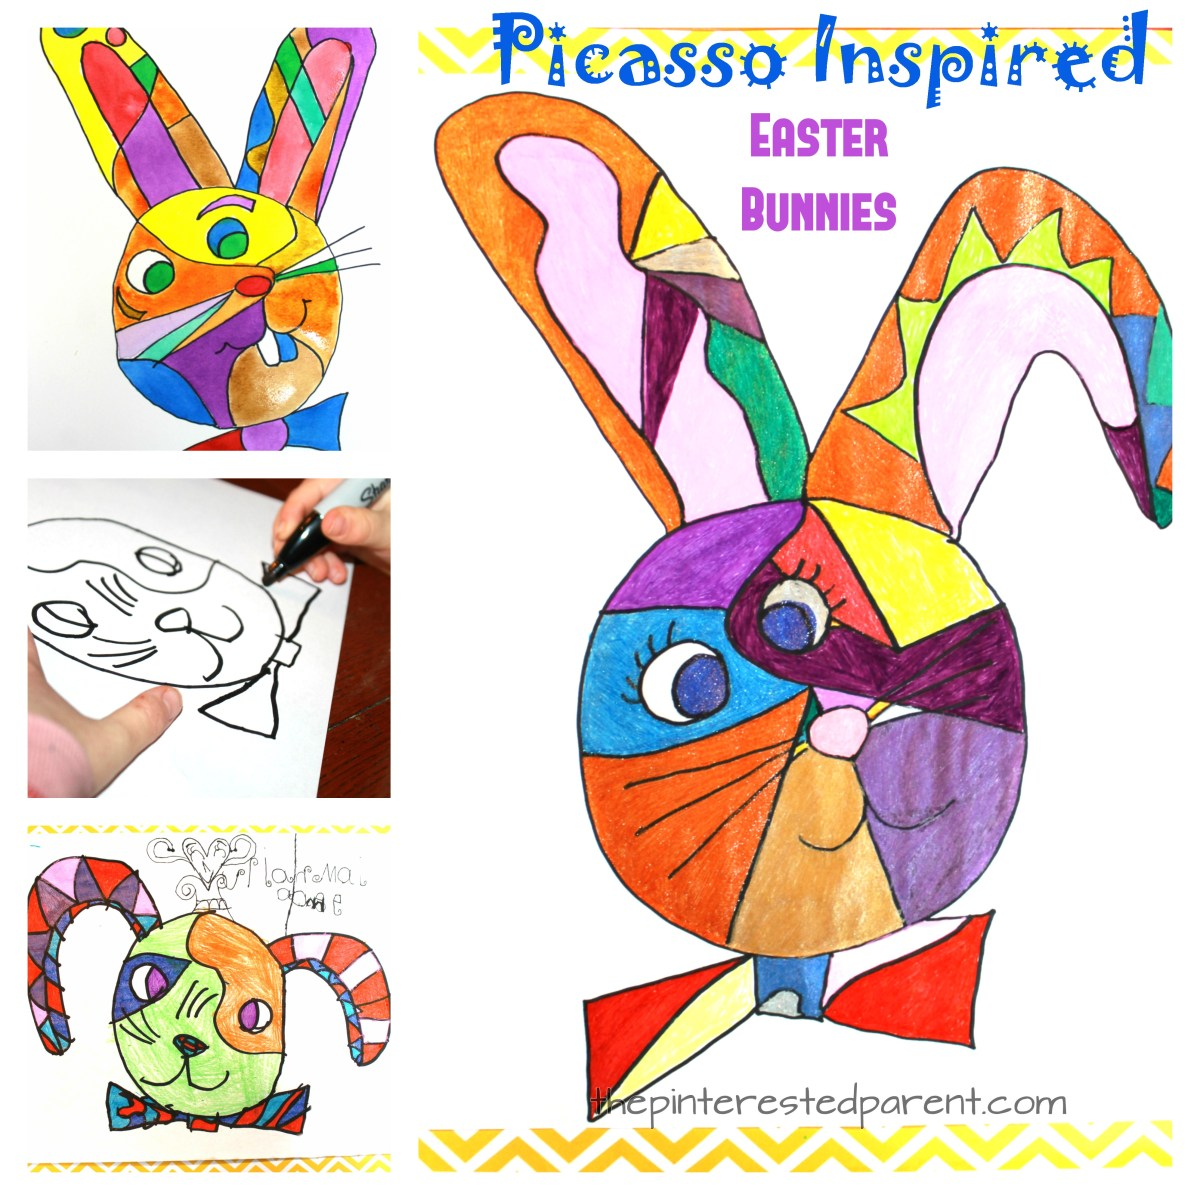 Picasso Inspired Easter Bunnies